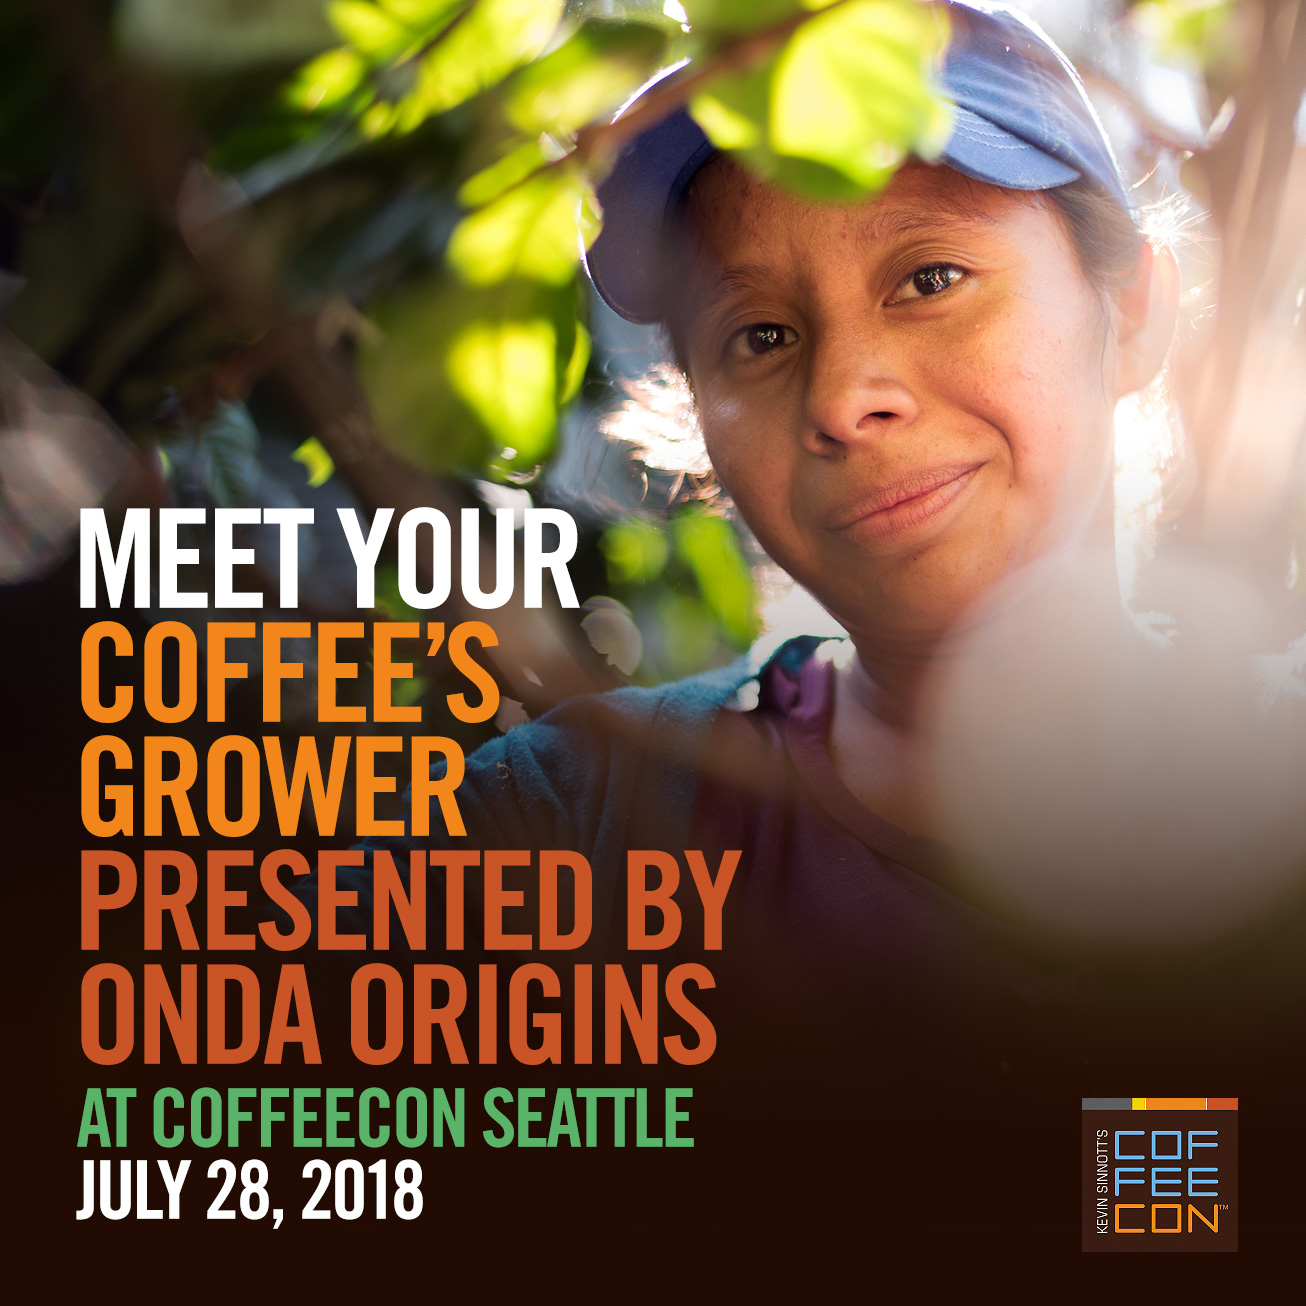 Meet Your Coffee Grower